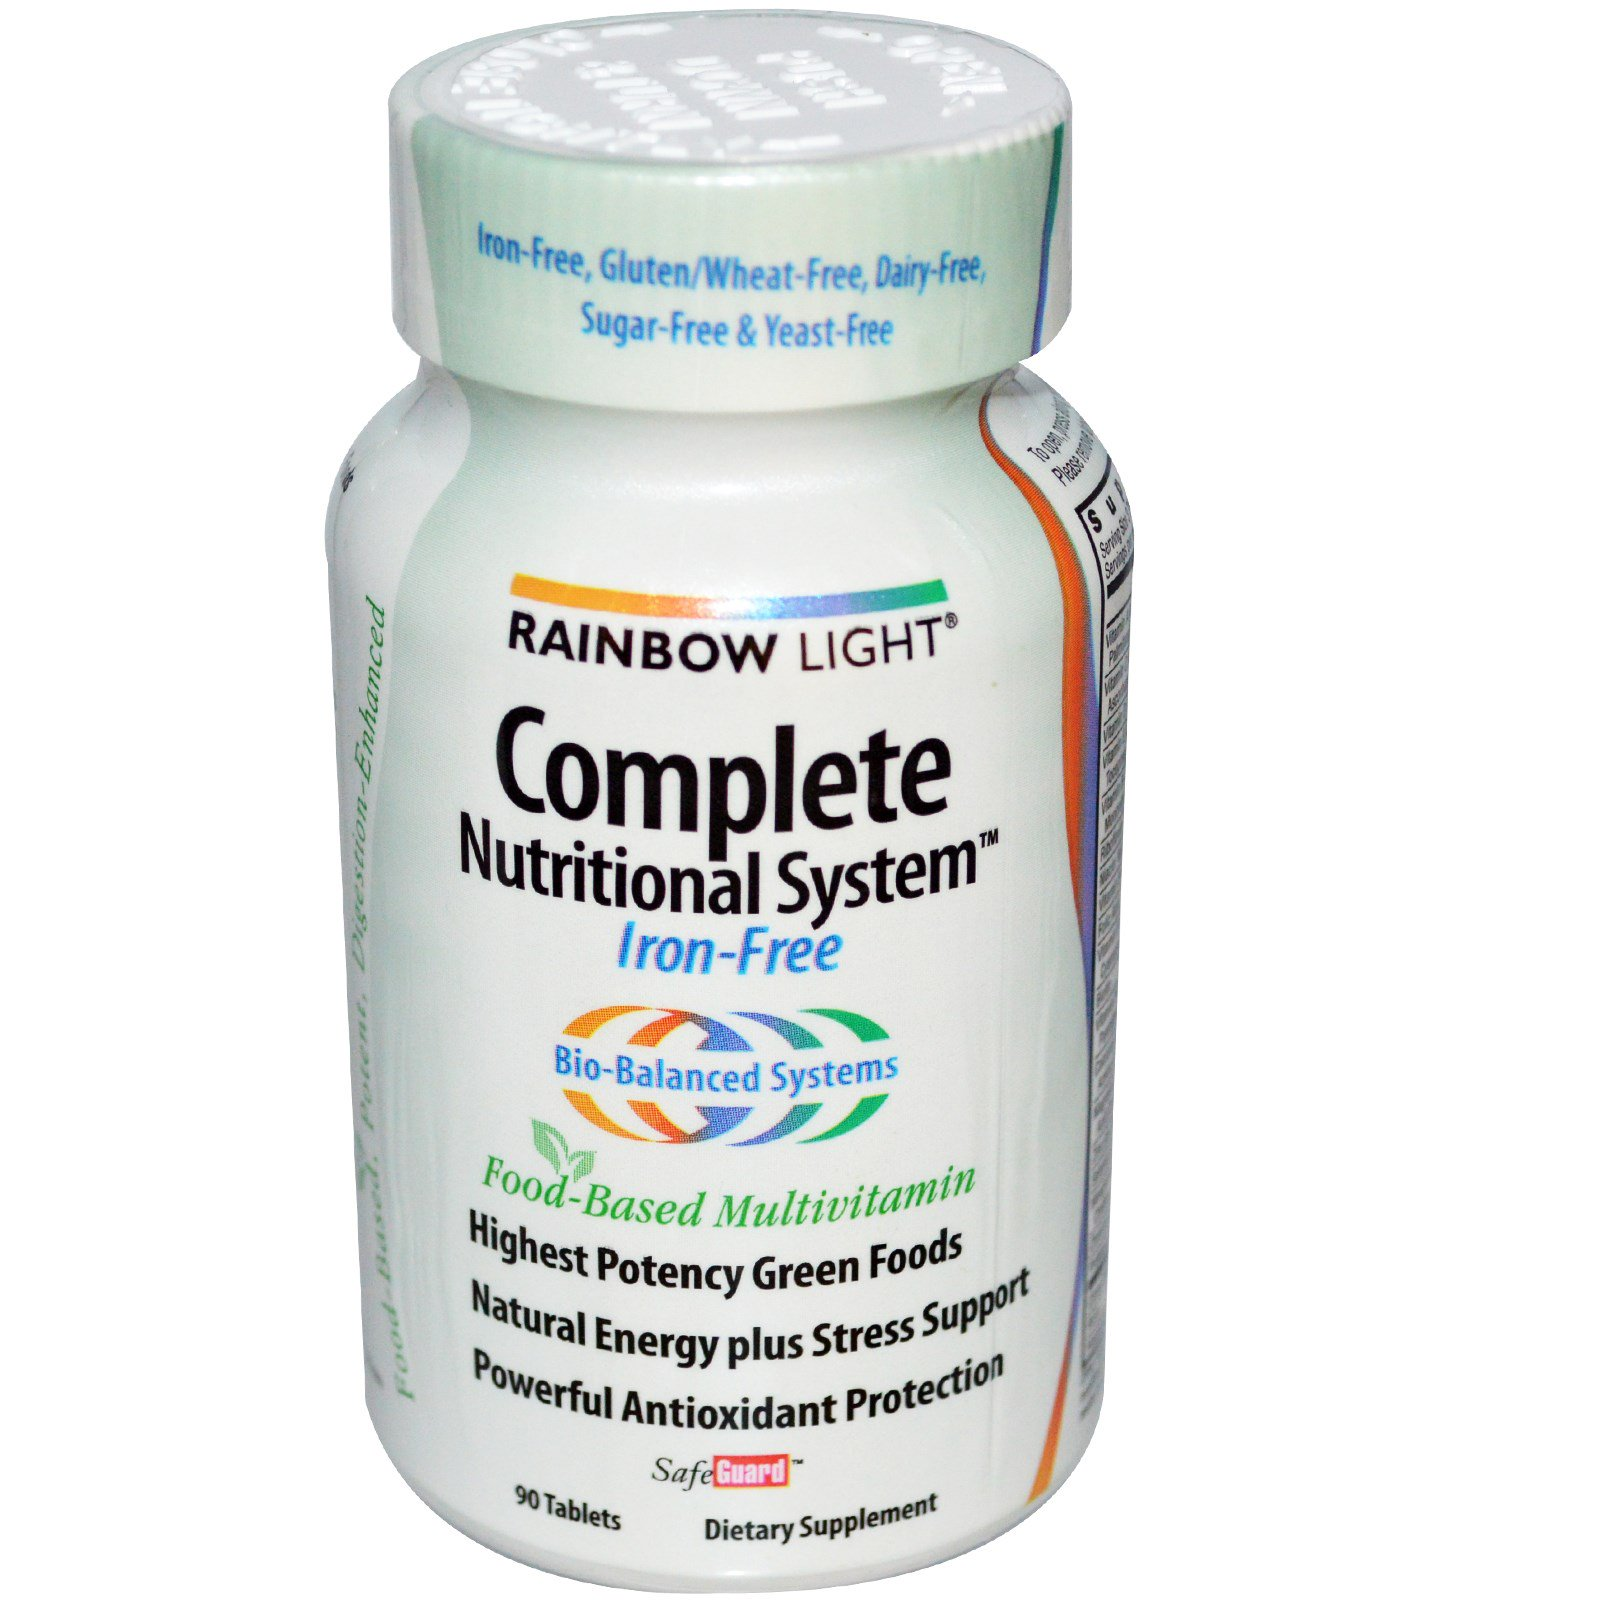 Rainbow Light Complete Nutritional Systemtm Multivitamin